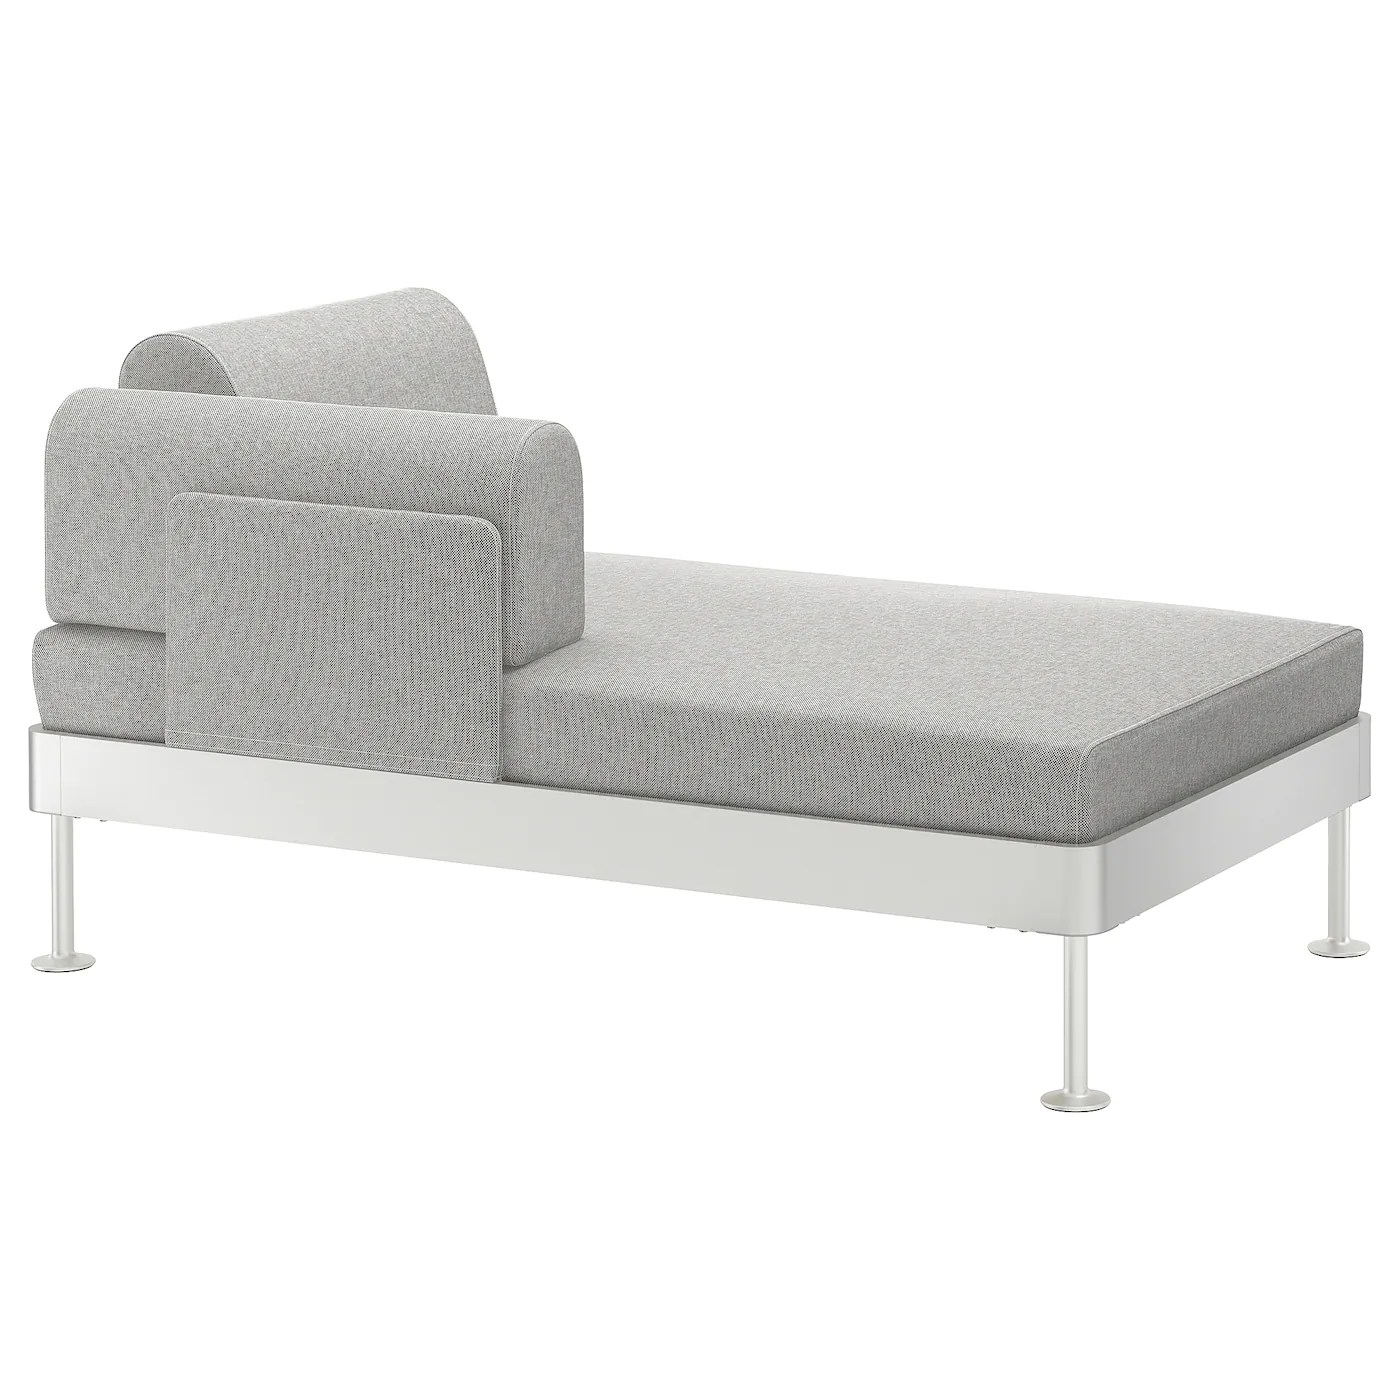 antwerp chaise sofa bed lounge how to wrap your for storage chaiselongues compra online ikea